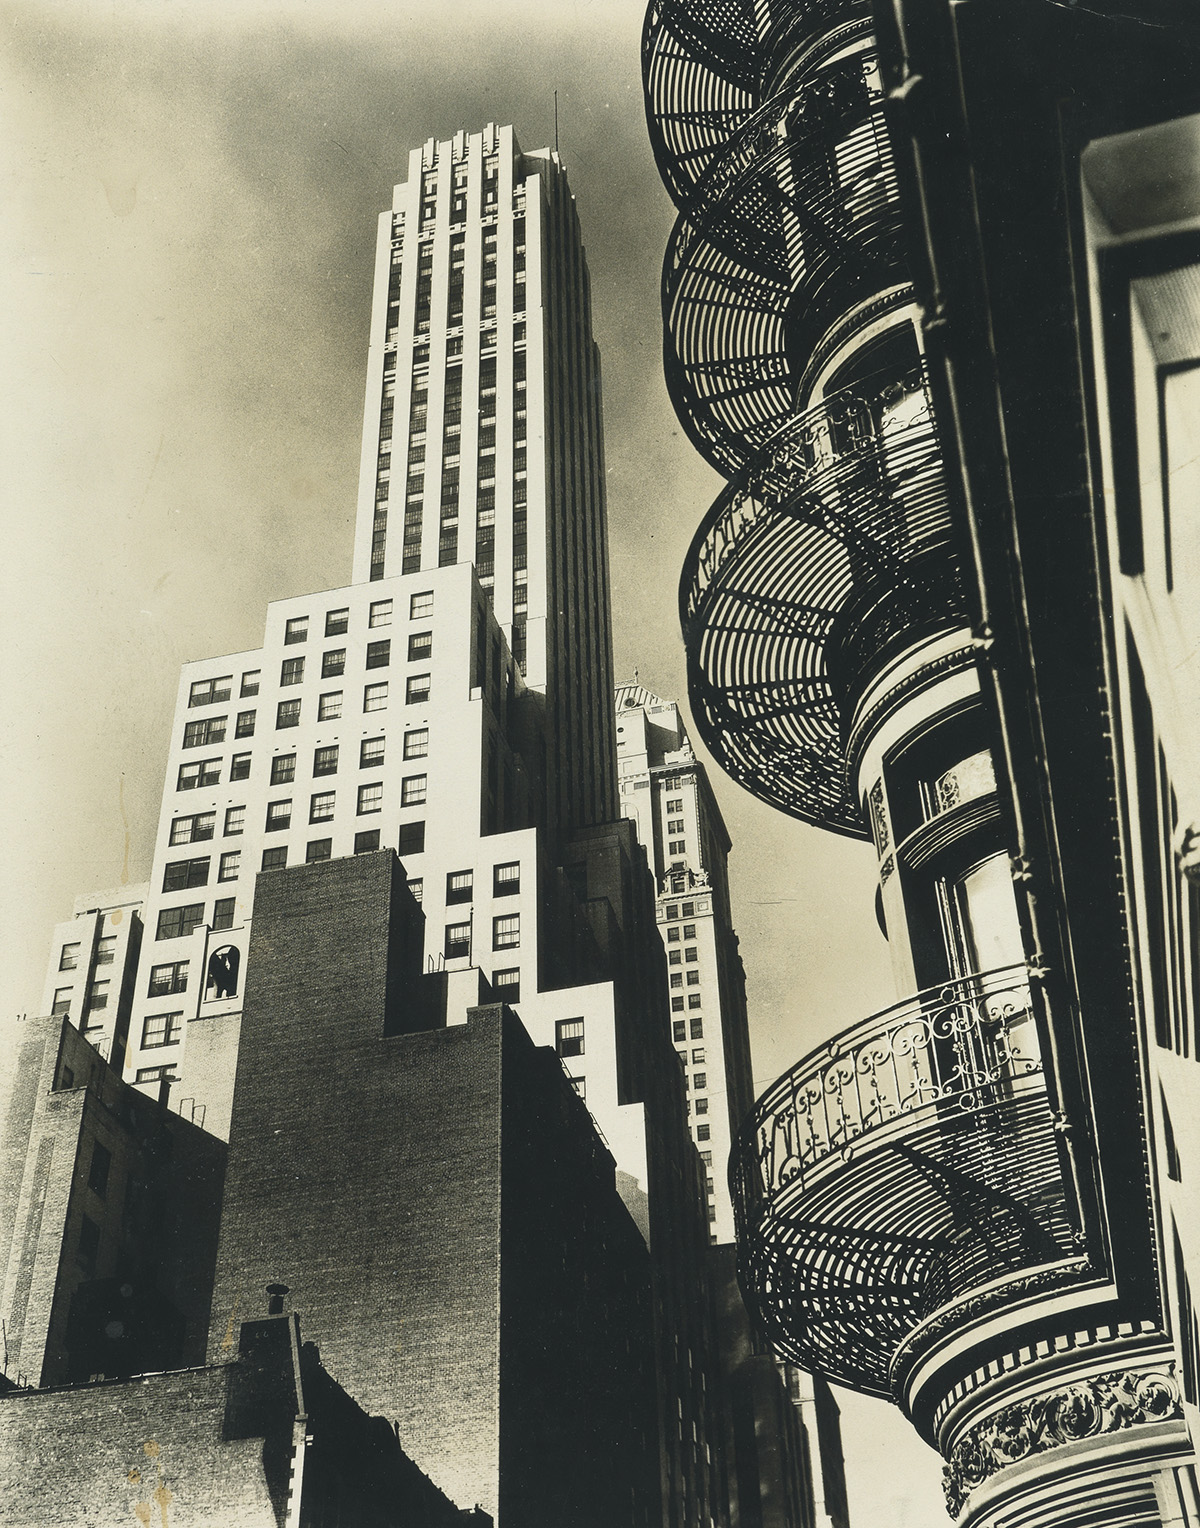 BERENICE ABBOTT (1898-1991) Group of 14 photographs depicting scenes of Manhattan from Abbotts iconic Changing New York series.